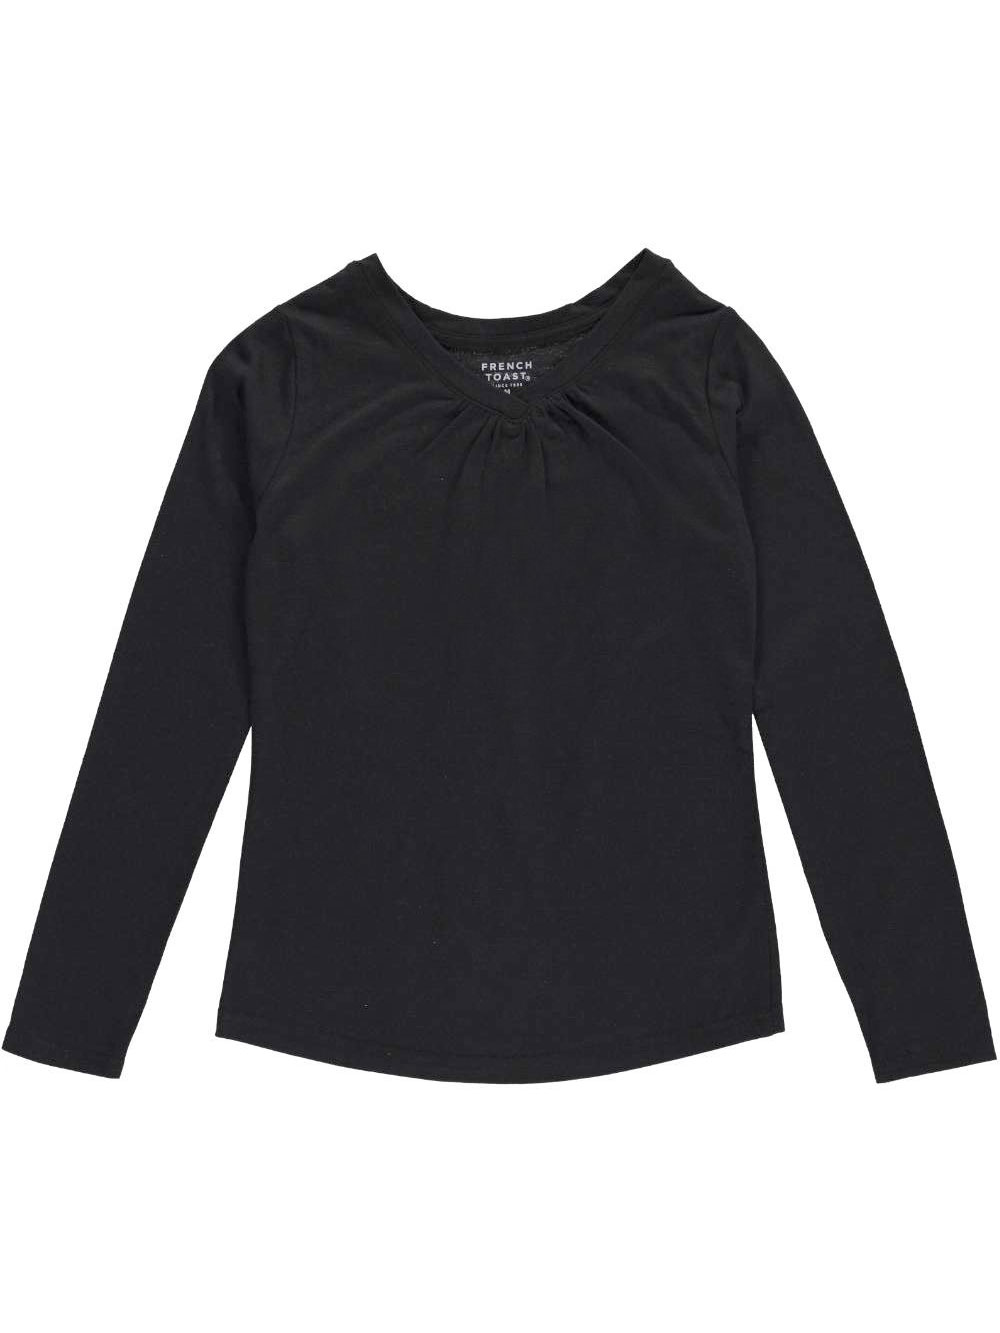 Image of French Toast Big Girls Ruched VNeck LS TShirt Sizes 7  16  black 12  14